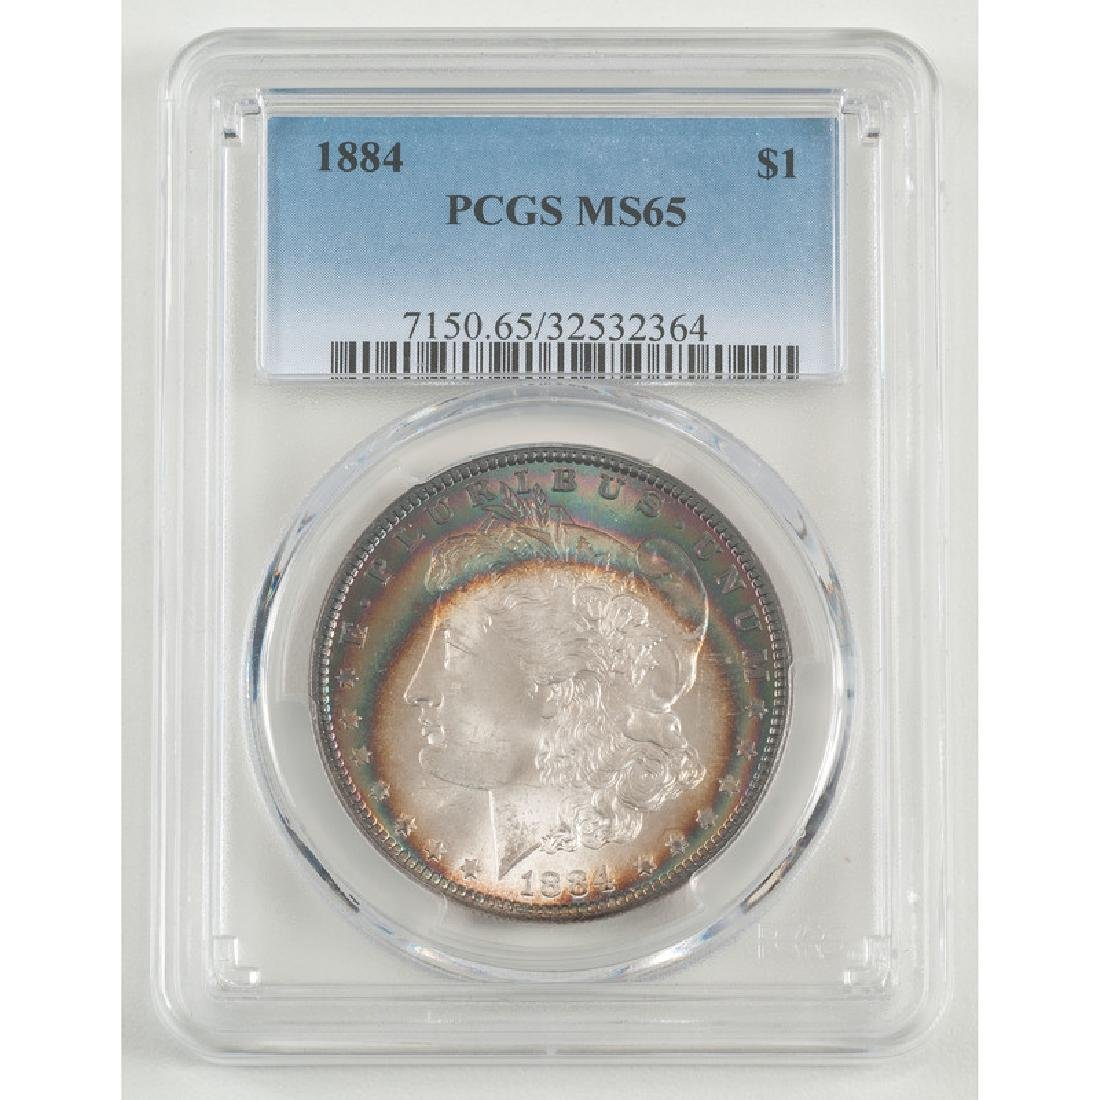 United States Morgan Silver Dollar 1884, PCGS MS65